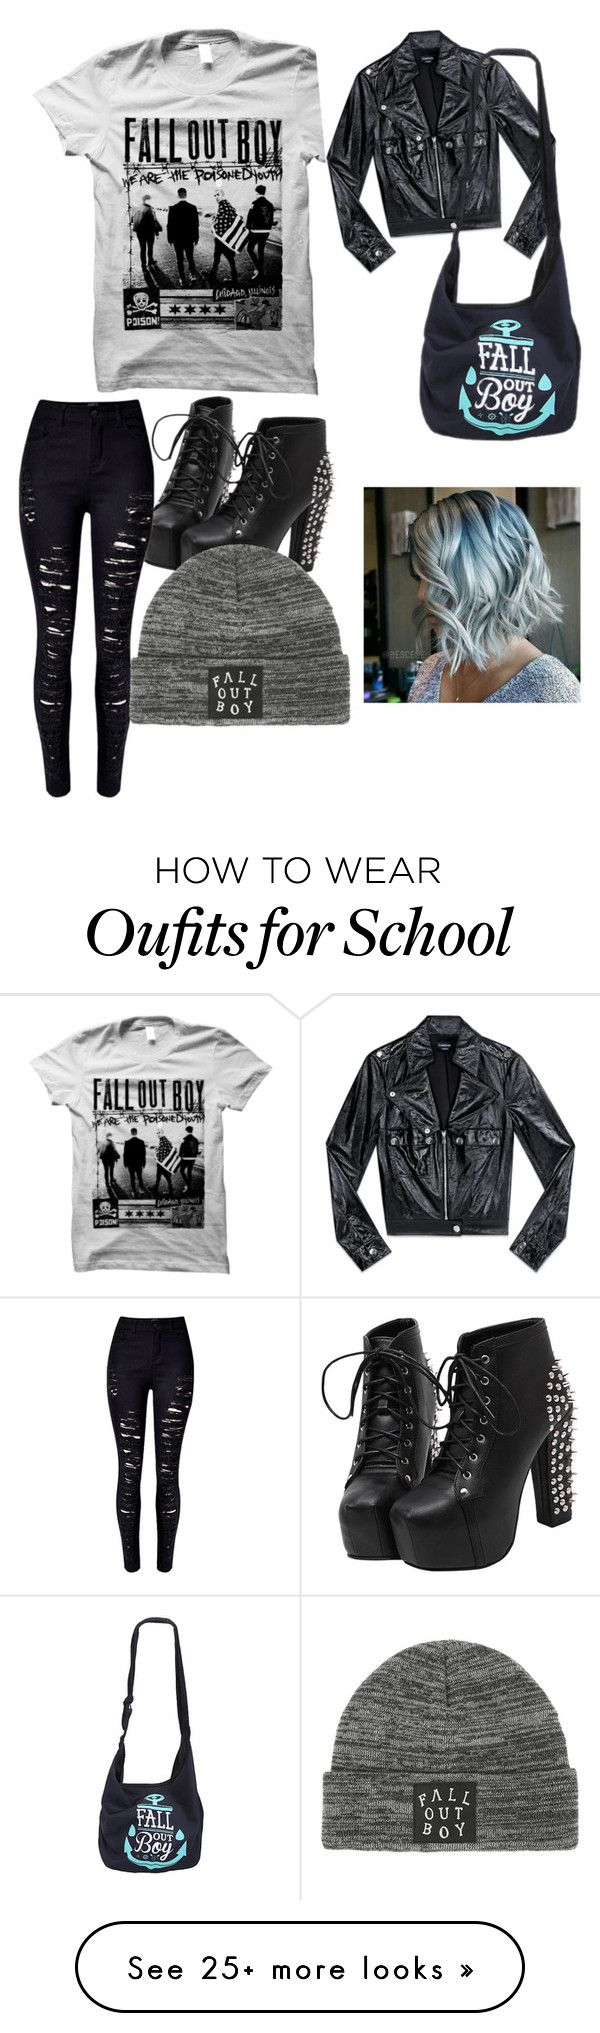 """""""school #3"""" by terresalynne on Polyvore featuring Bebe, WithChic and no"""